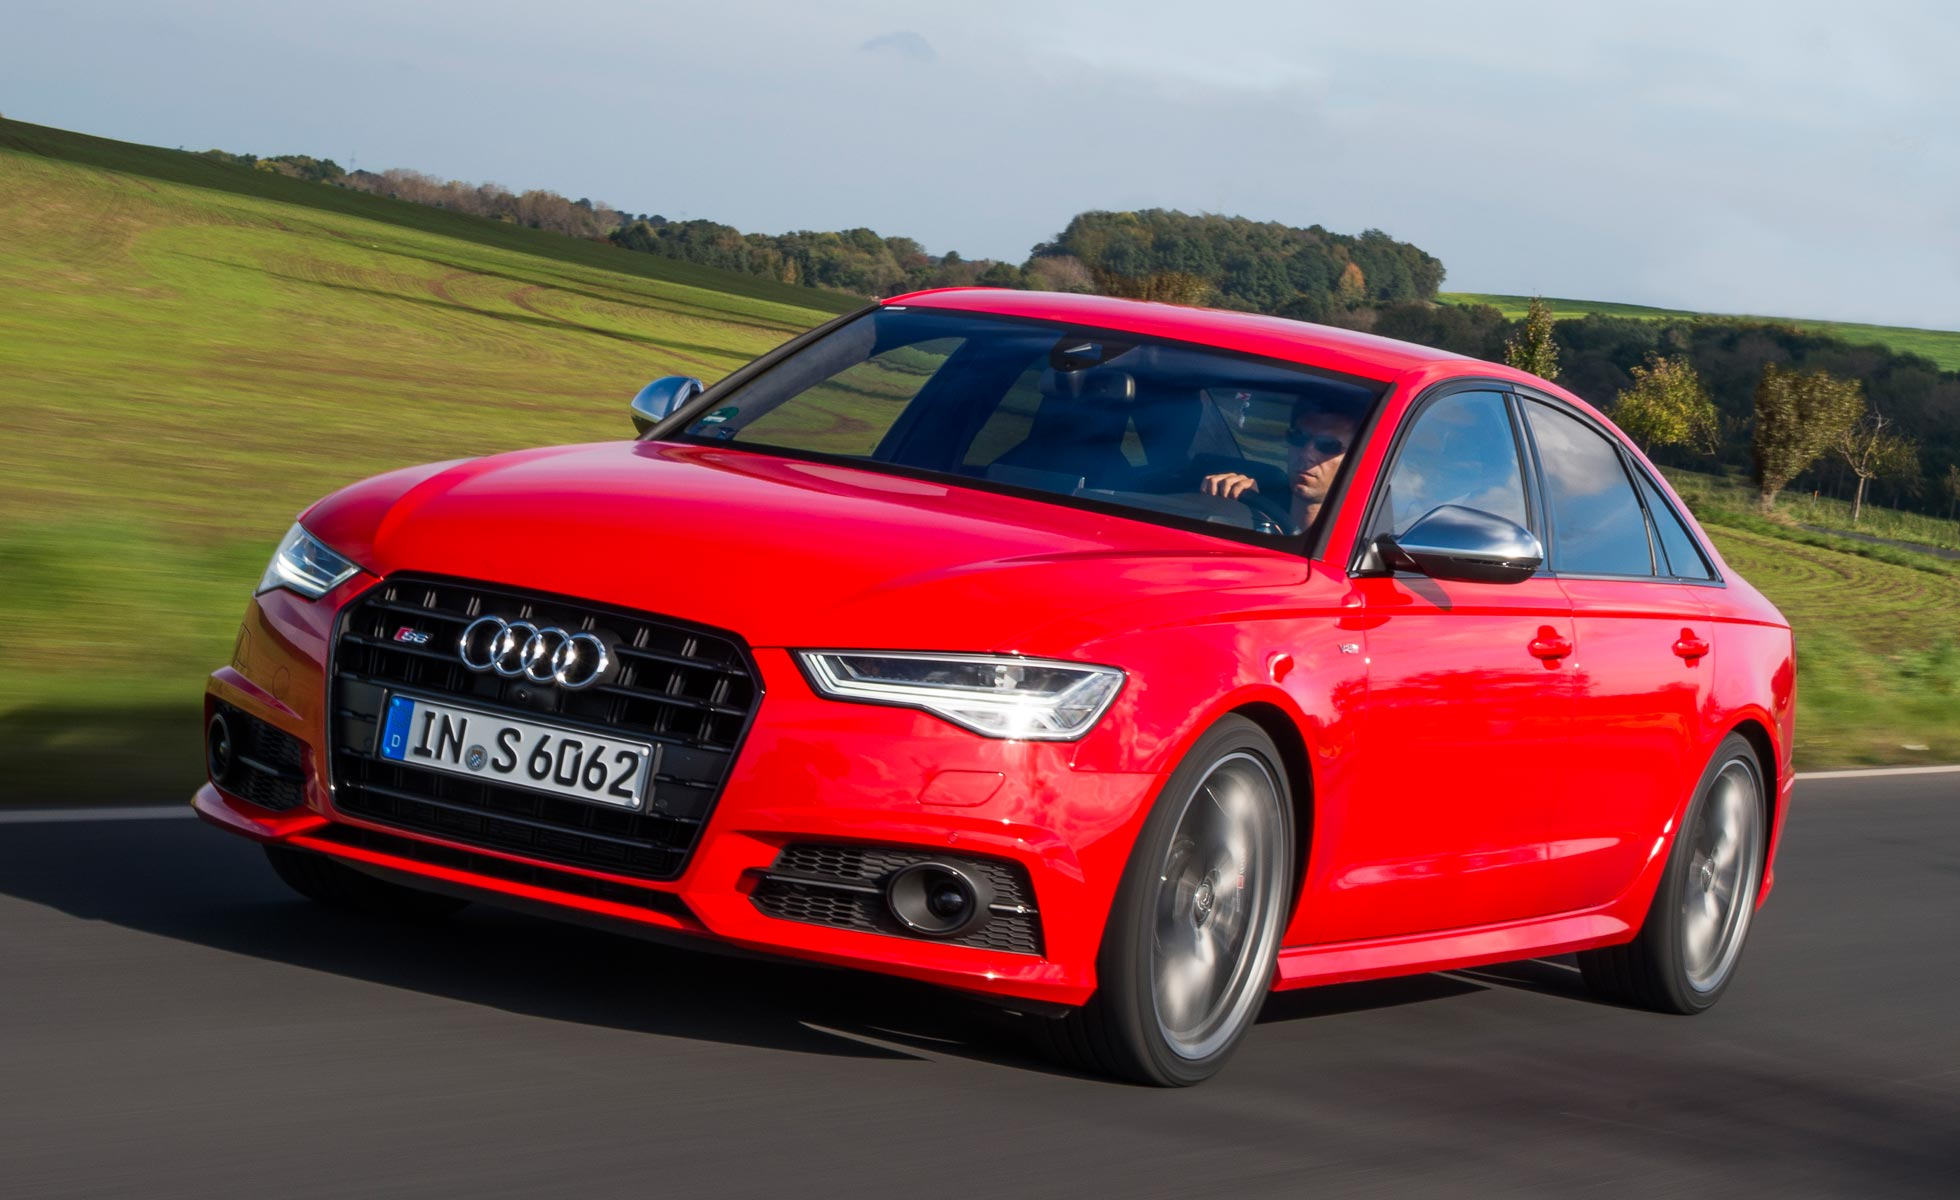 audi s6 (iii) 2015 pictures #8